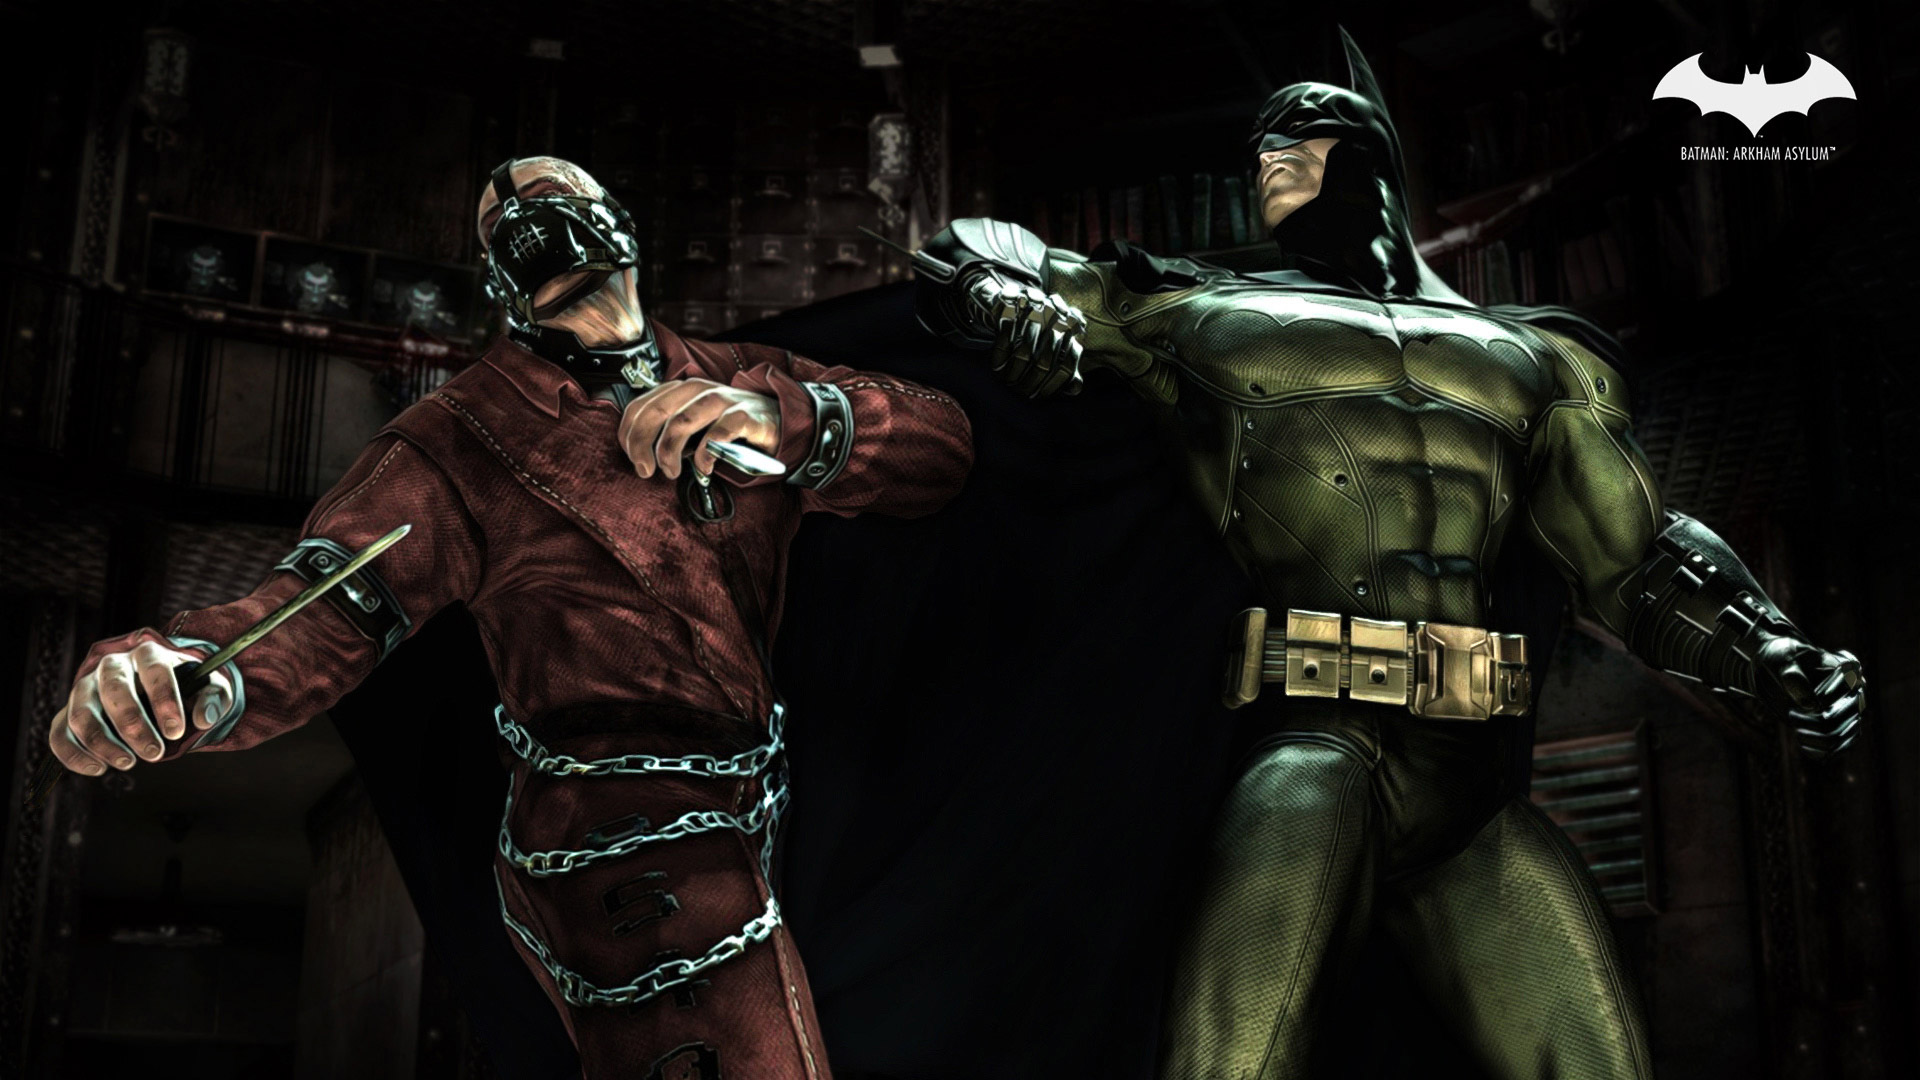 Batman: Arkham Asylum Wallpaper in 1920x1080